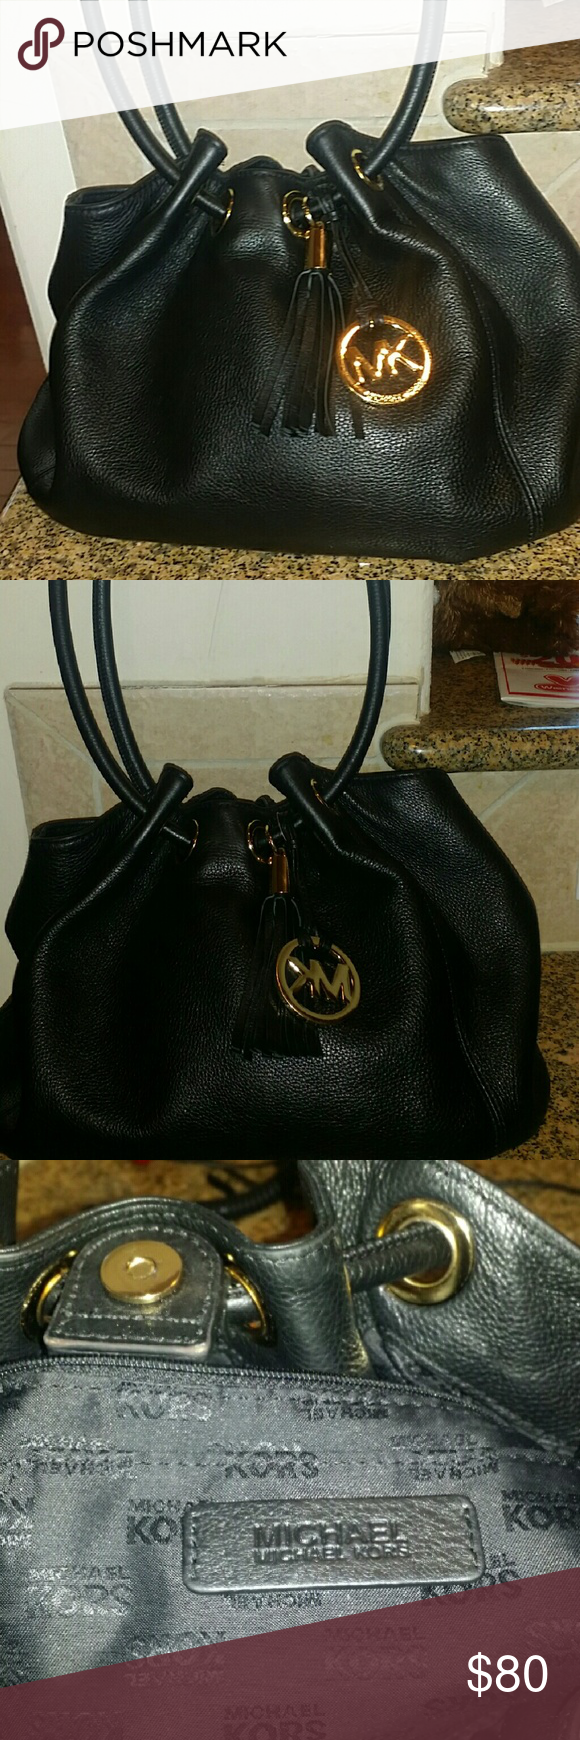 f11ce97bf33f Michael Kors Hobo Bag Authentic MK black soft leather bag, the bag is in  good condition, except for a small nick on the inside strap Michael Kors  Bags Hobos